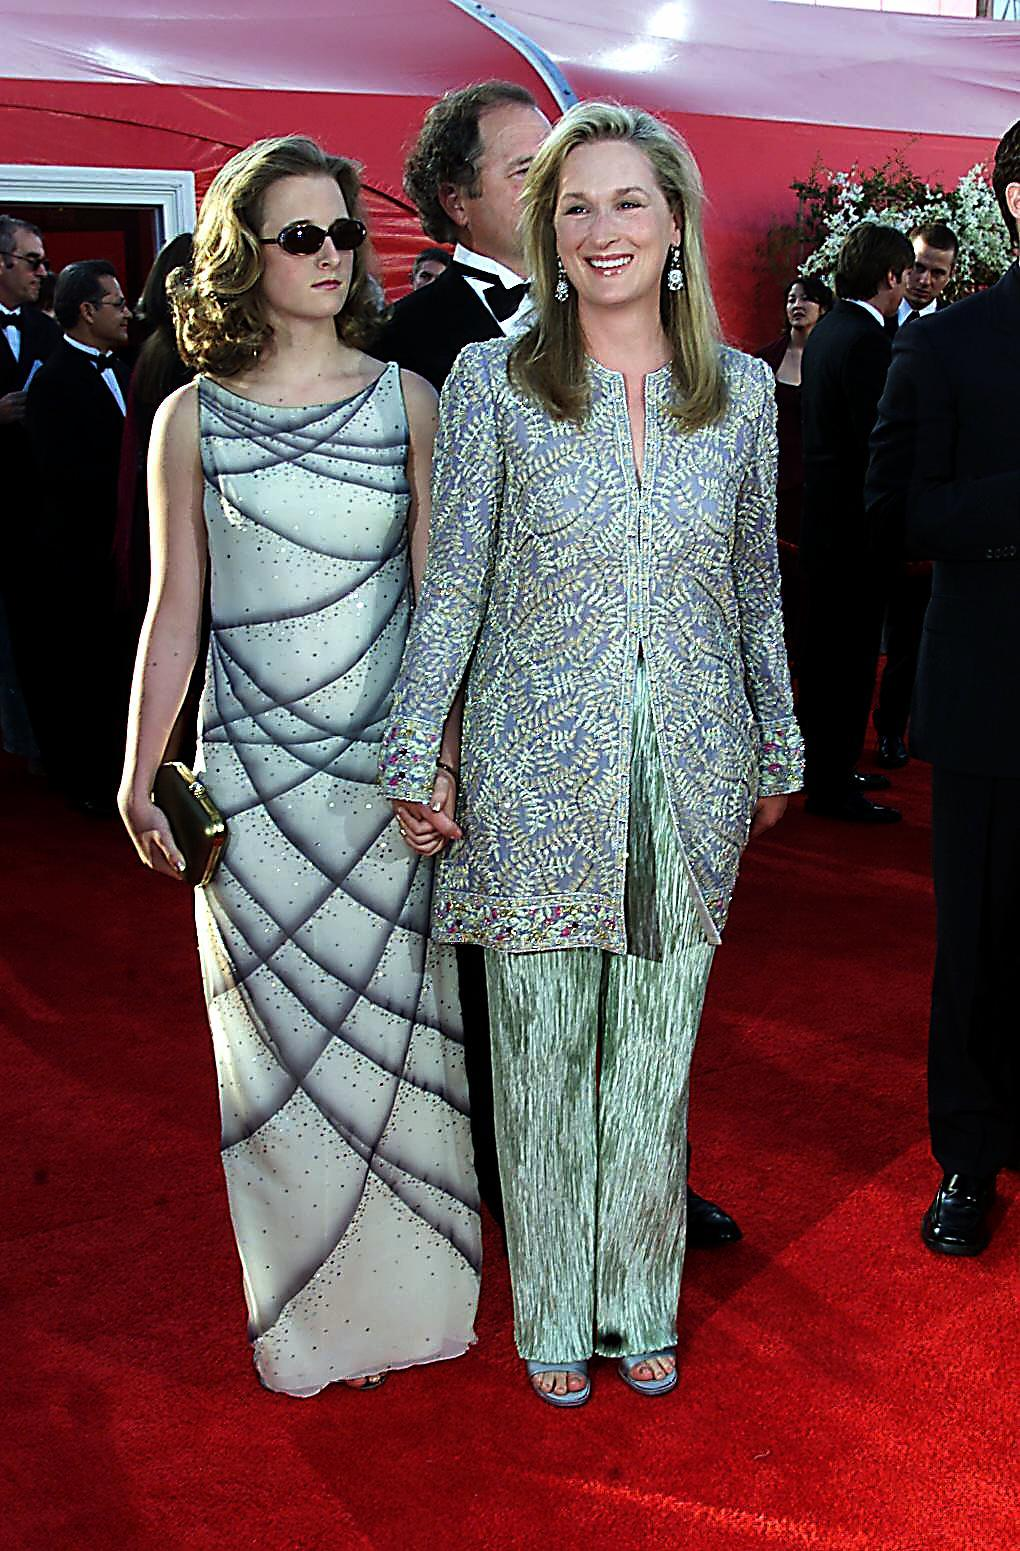 Meryl Streep and daughter Mamie Gummer arrive at the Academy Awards at the Shrine Auditorium in Los Angeles on March 26, 2000.